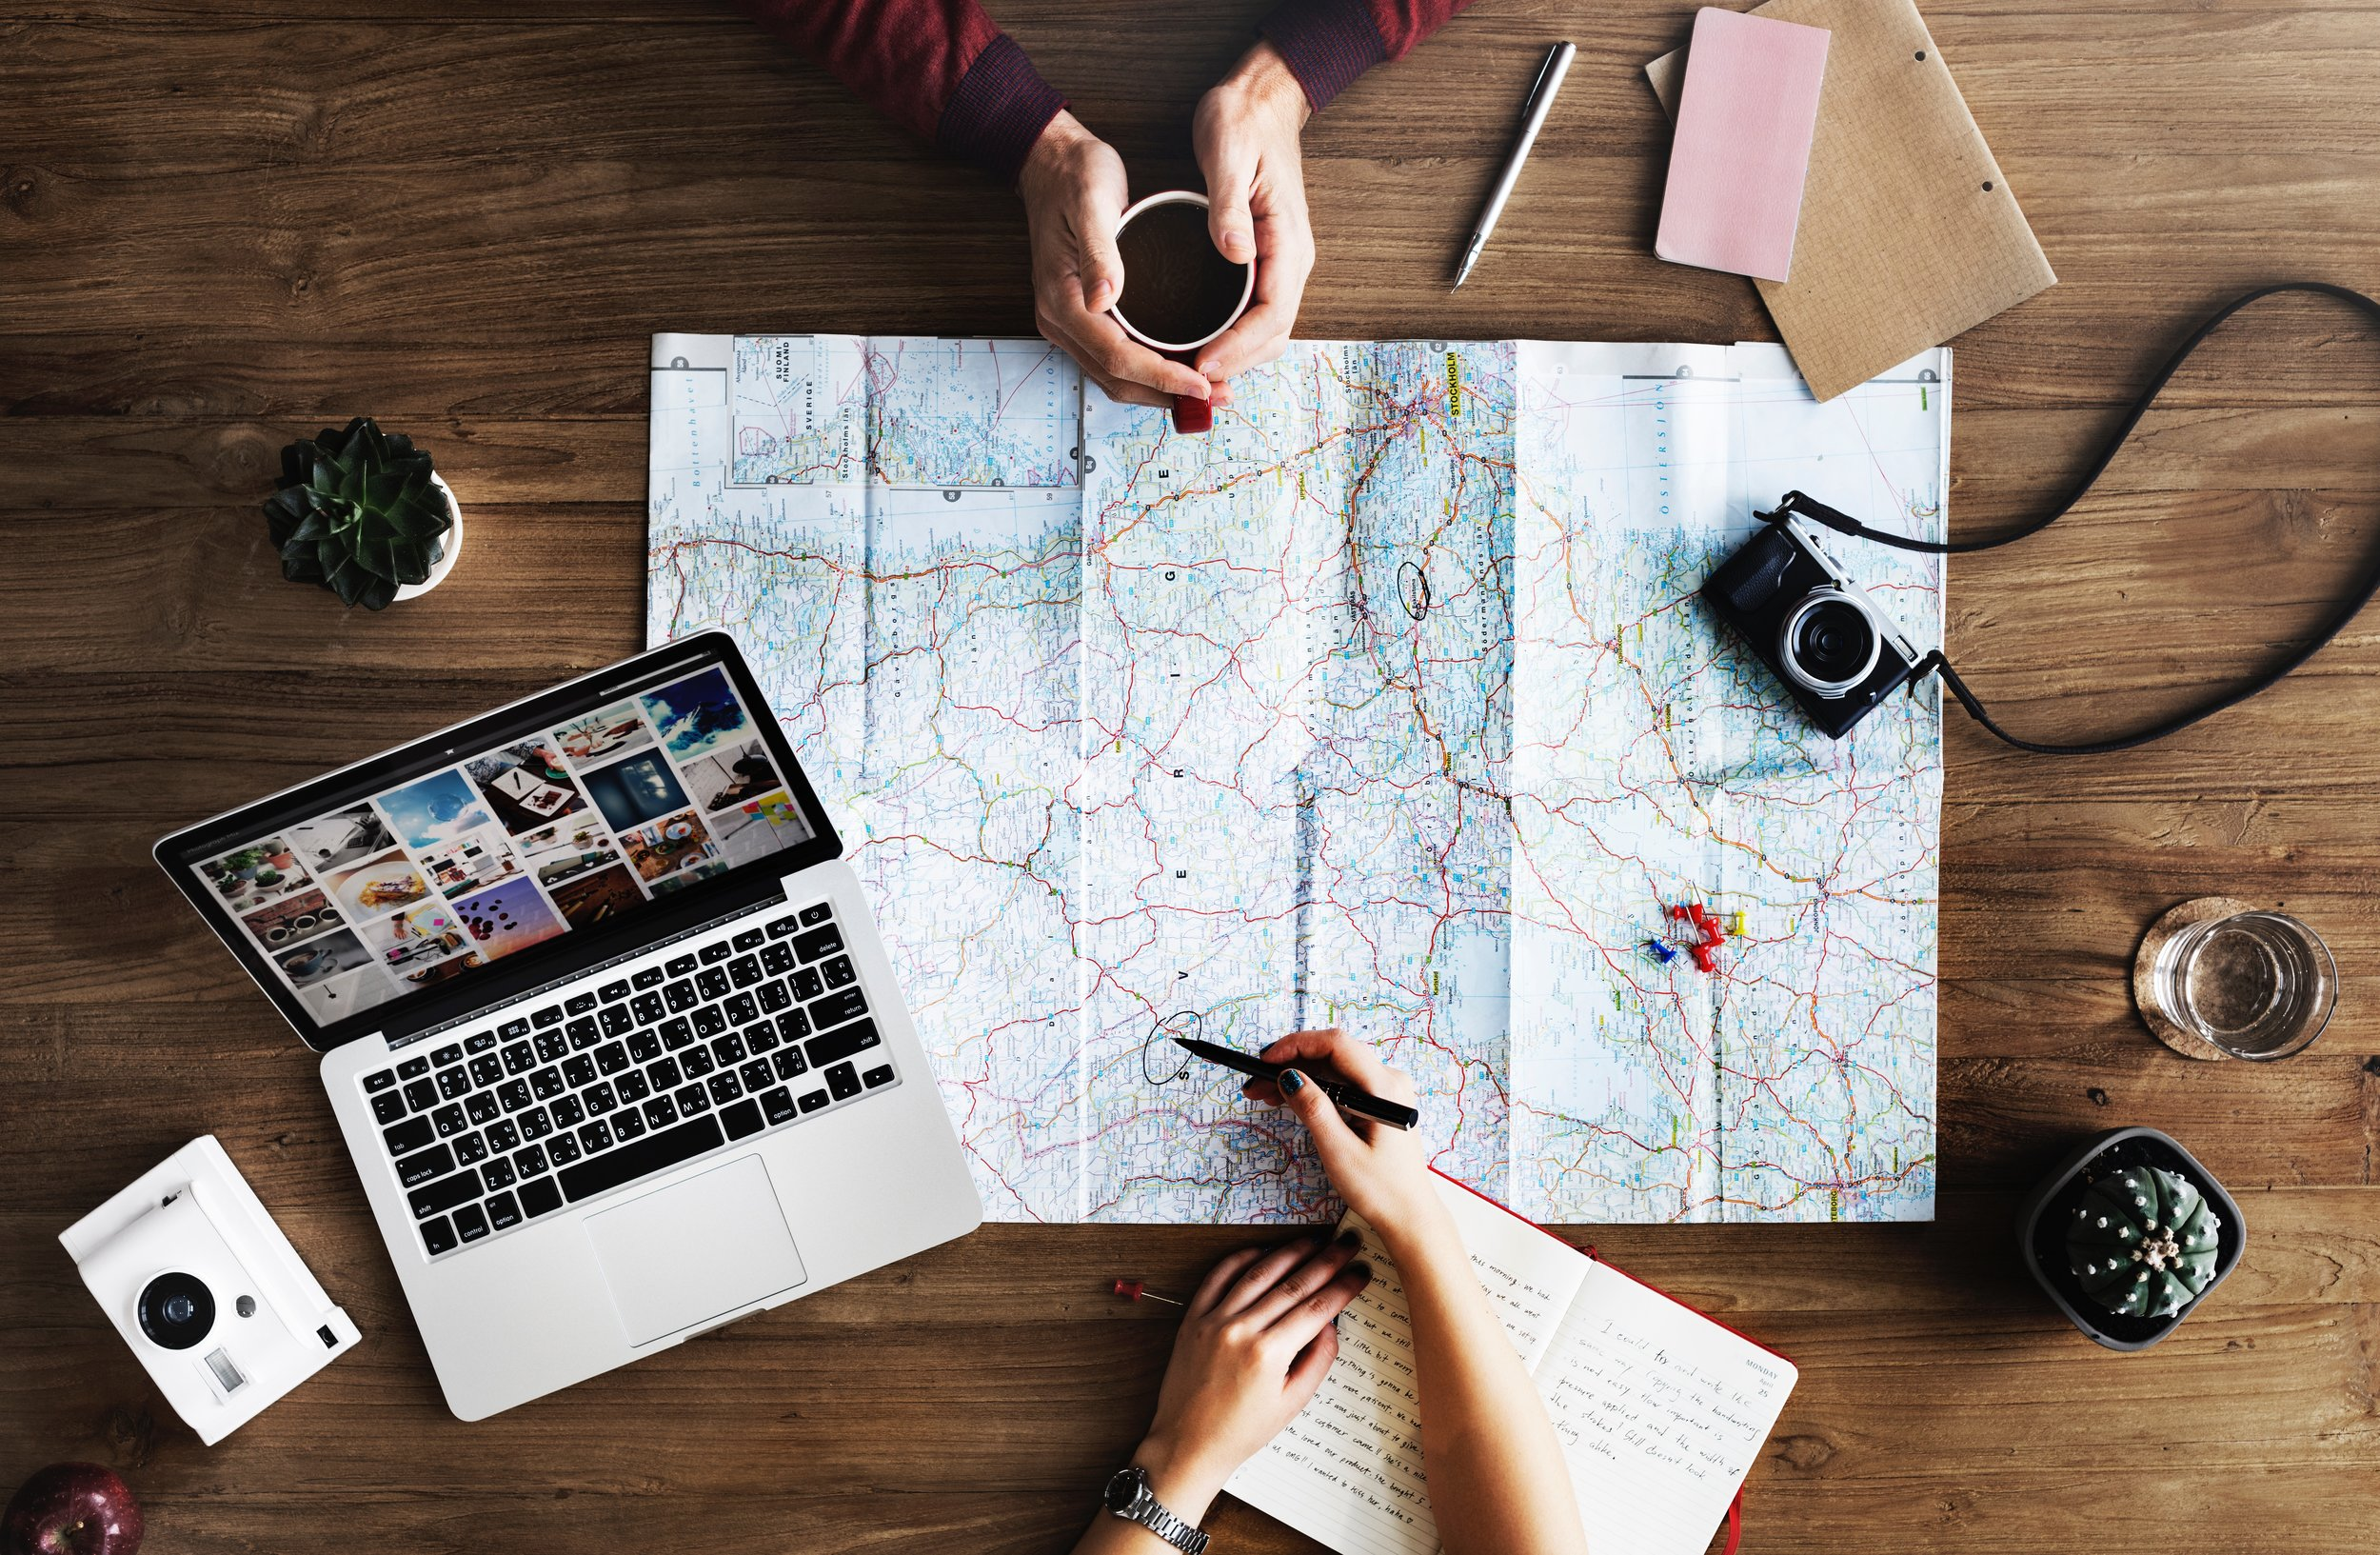 Two travellers plan out their trip with a map, notebook, camera, laptop, and cup of coffee.